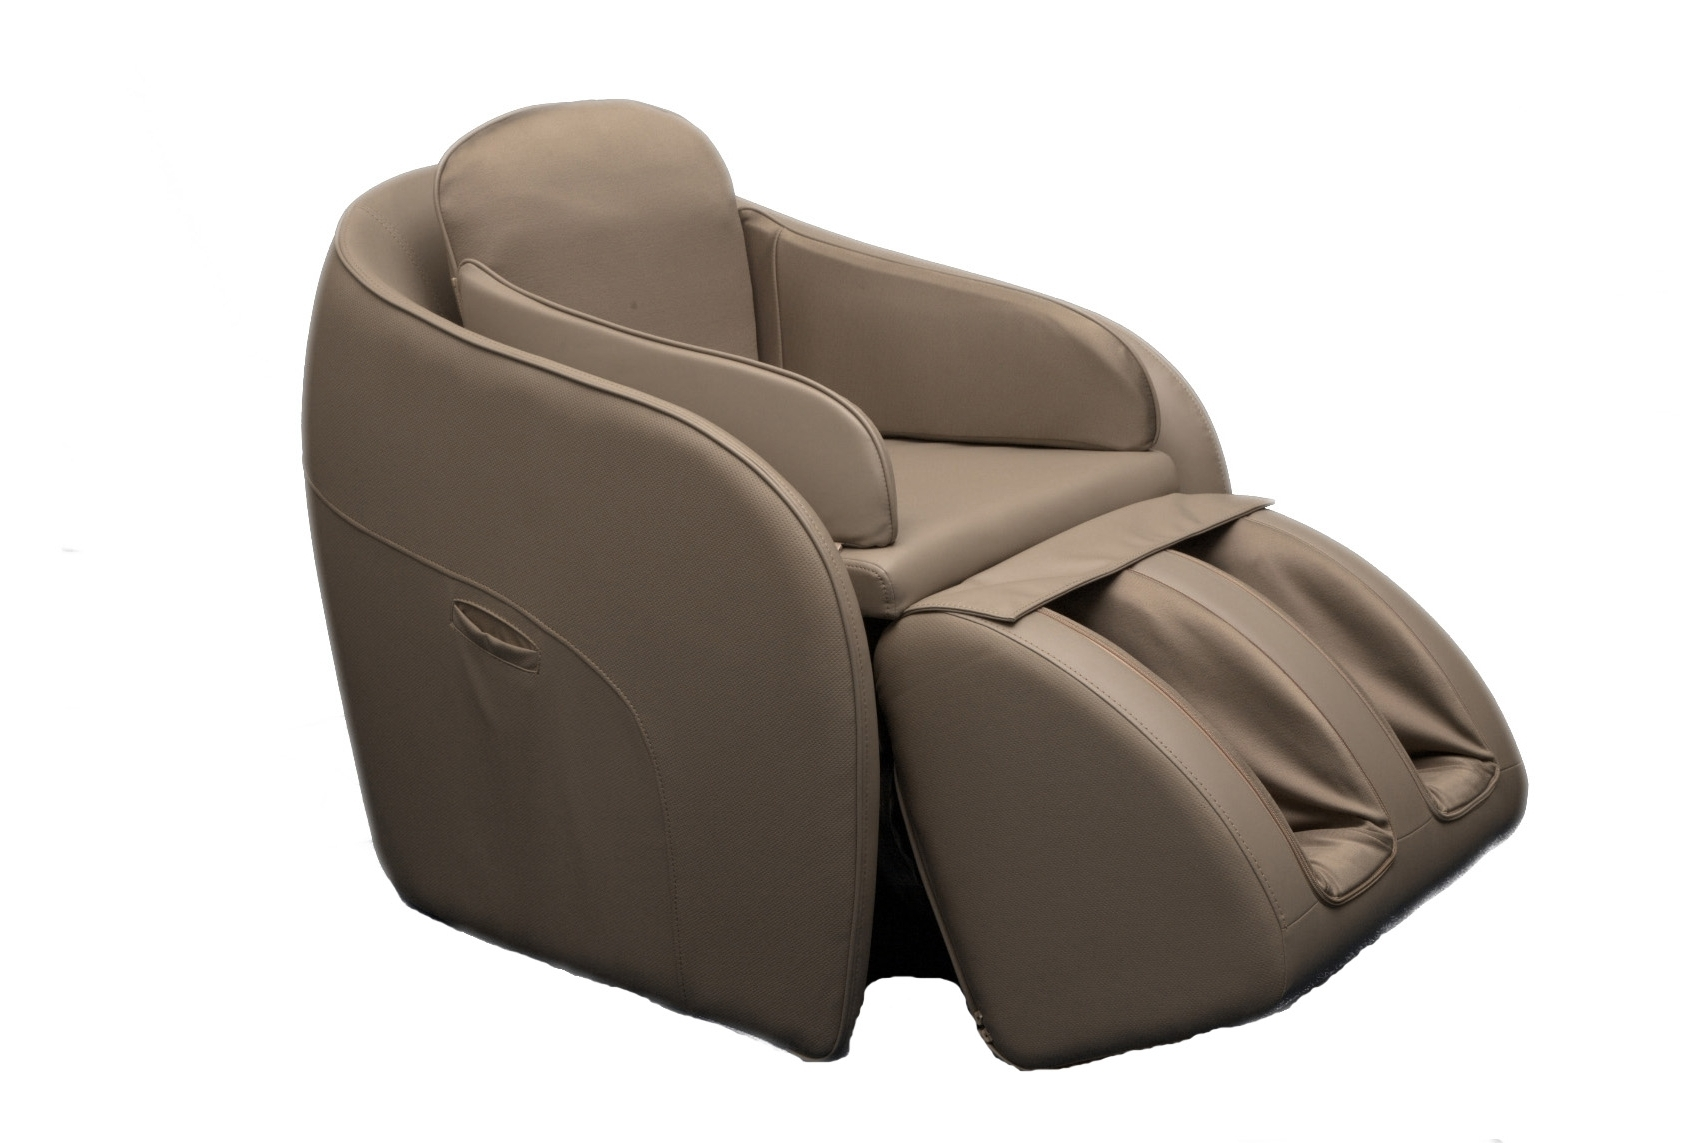 Modern Concept Foot Massage Chairs With Portable Foot Massage Sofa For Most Up To Date Foot Massage Sofas (View 9 of 15)